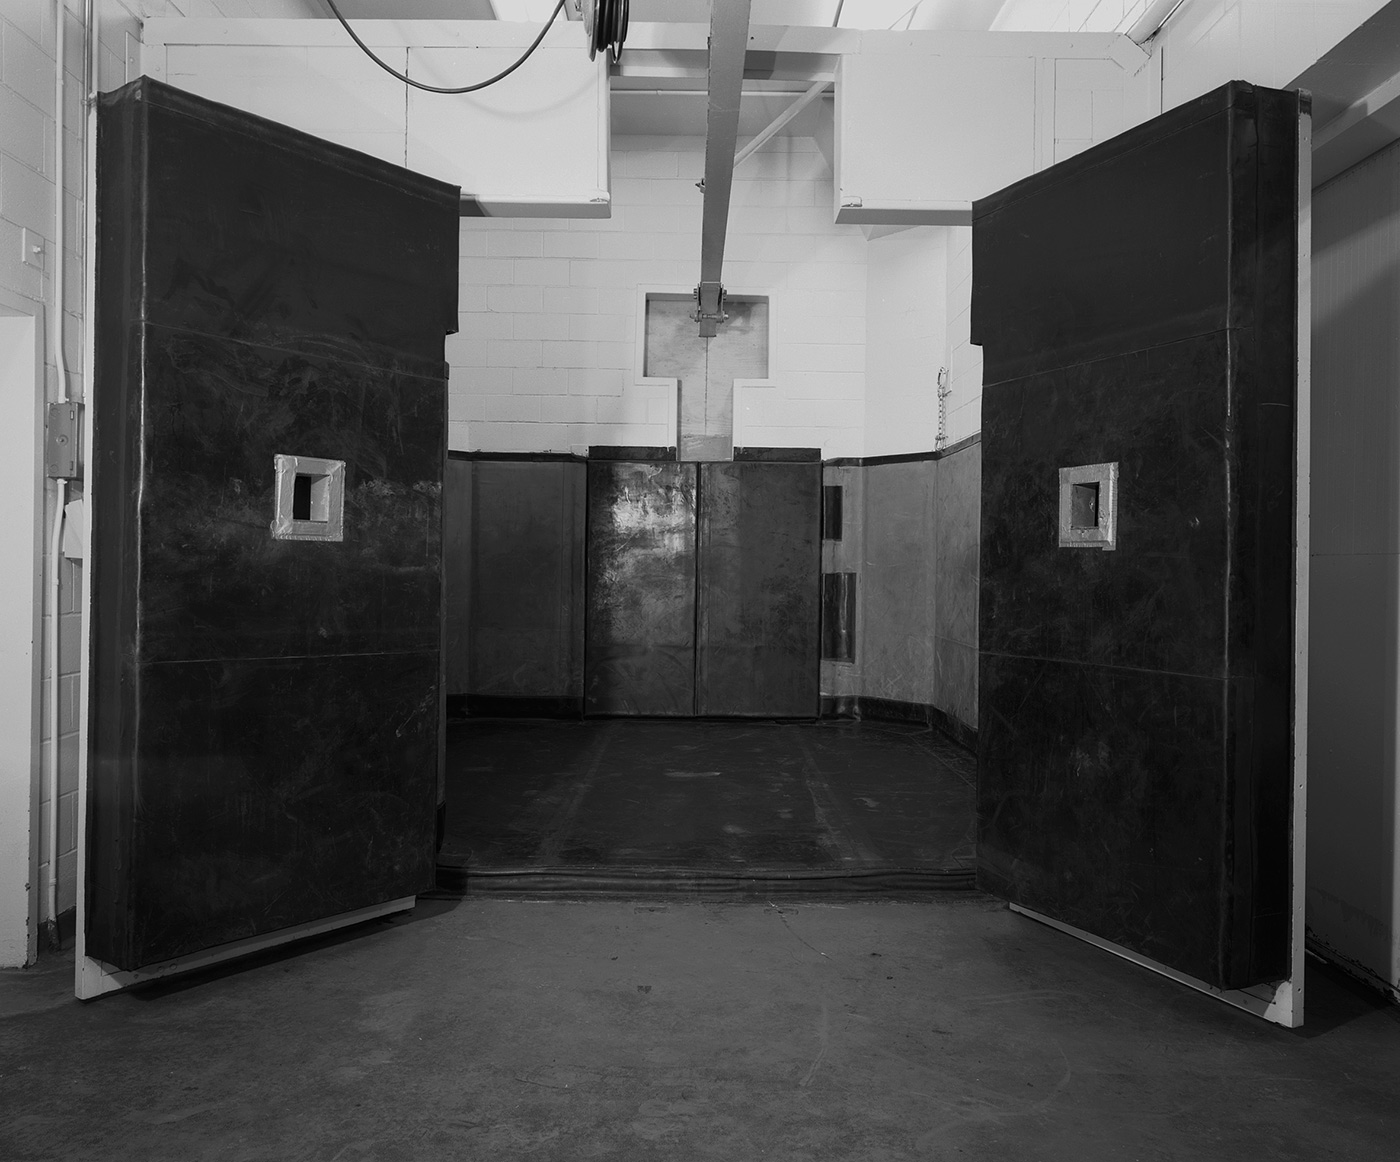 Untitled (black doors Malevitch), 2004